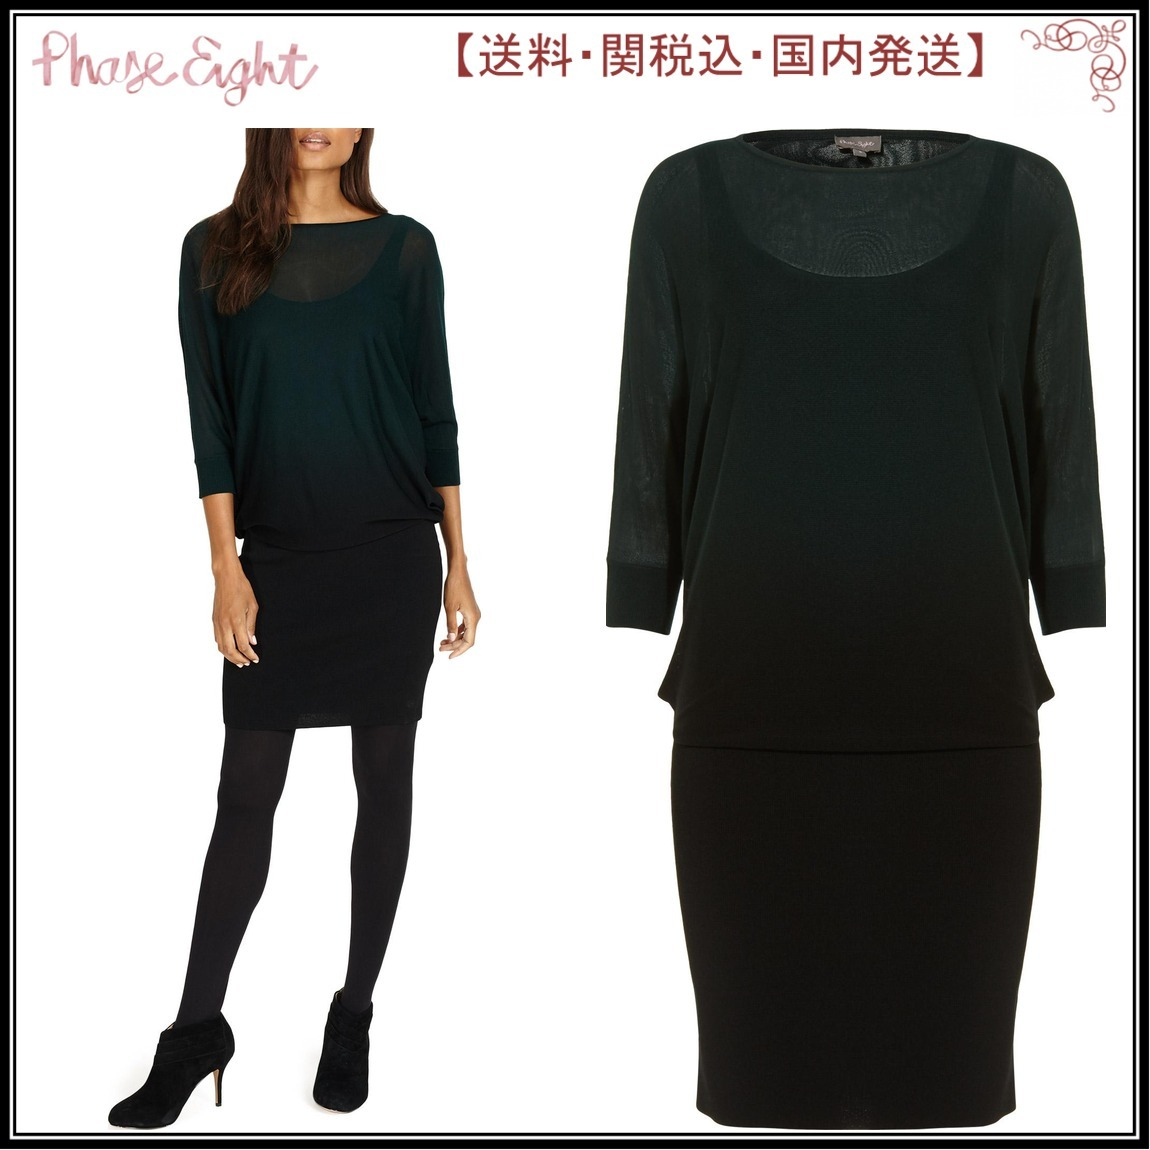 【関税込】PhaseEight人気ワンピ☆Sheer Dip Dye Becca Dress